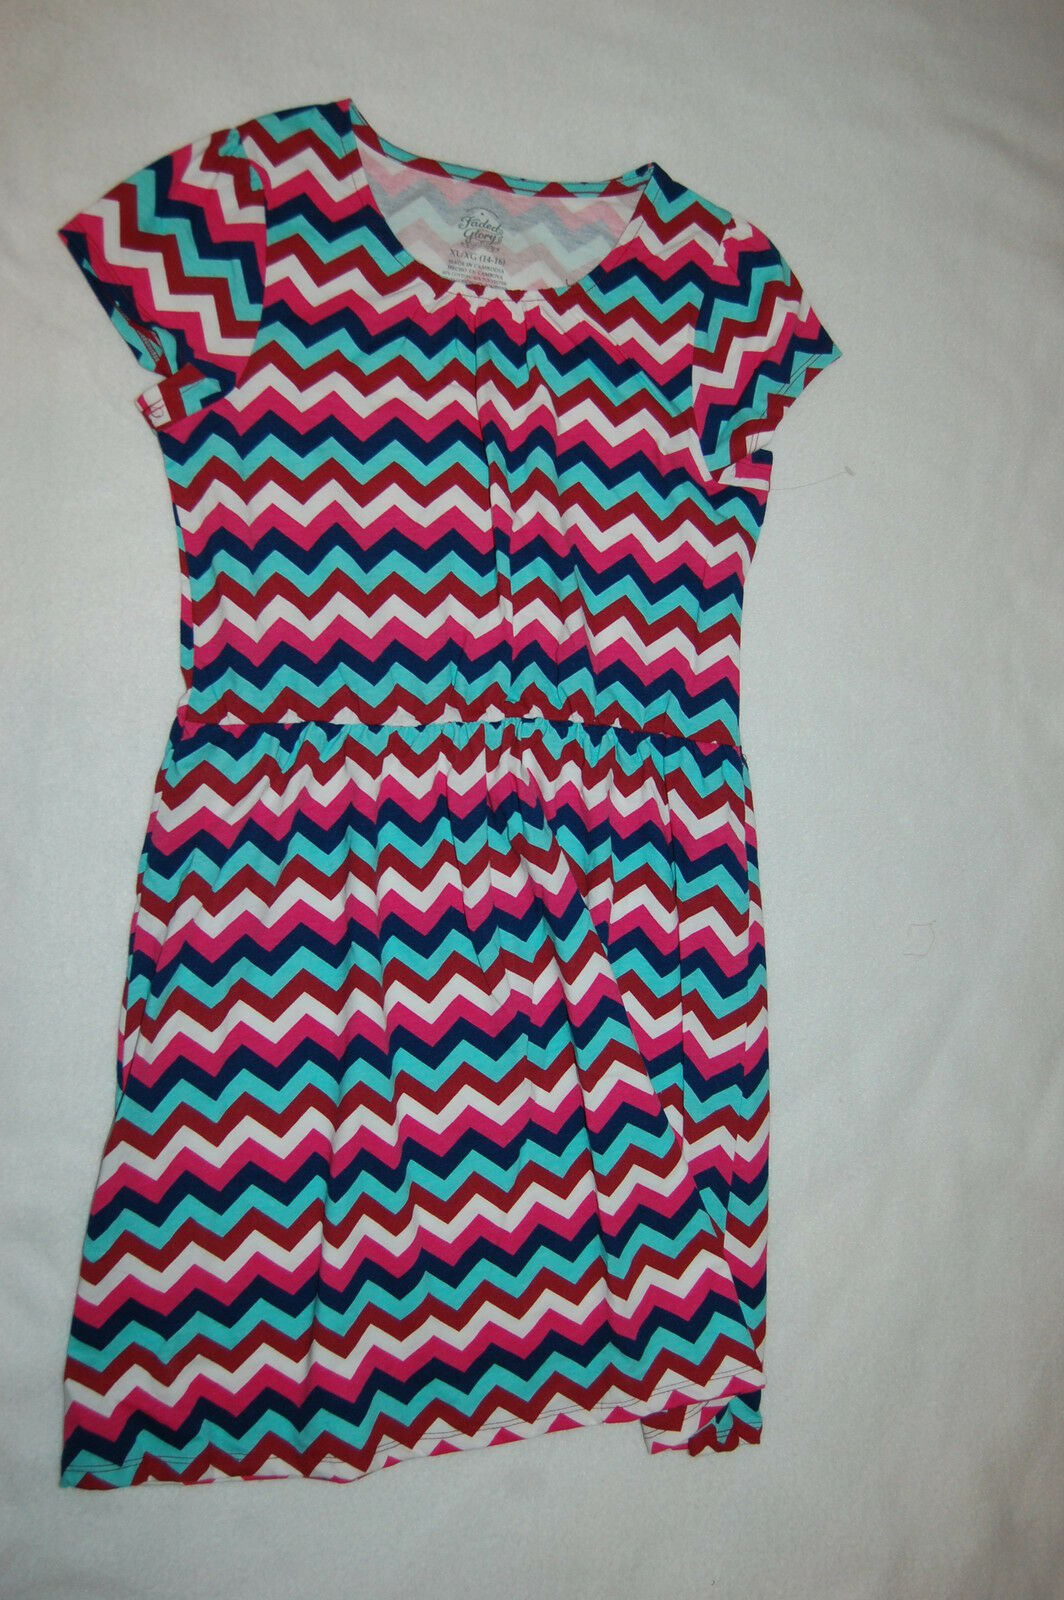 9da73c067 Girls S s Dress Chevron Zig Zag Pink Navy Burgundy Aqua Casual Play ...